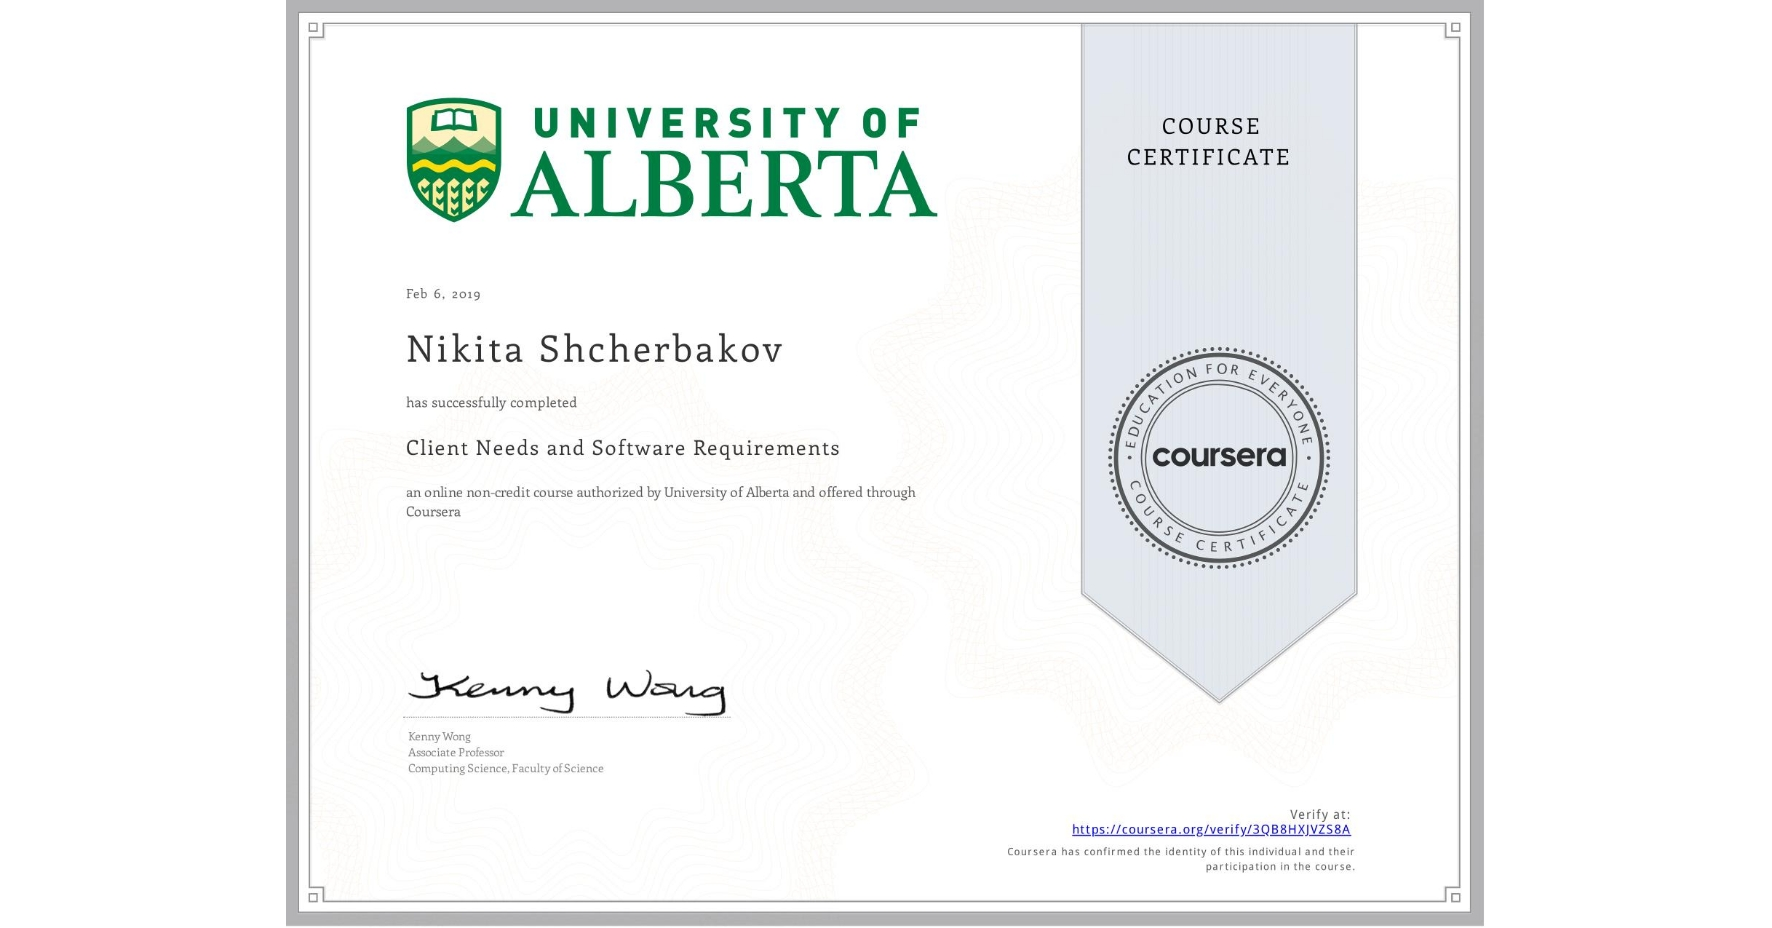 View certificate for Nikita Shcherbakov, Client Needs and Software Requirements , an online non-credit course authorized by University of Alberta and offered through Coursera